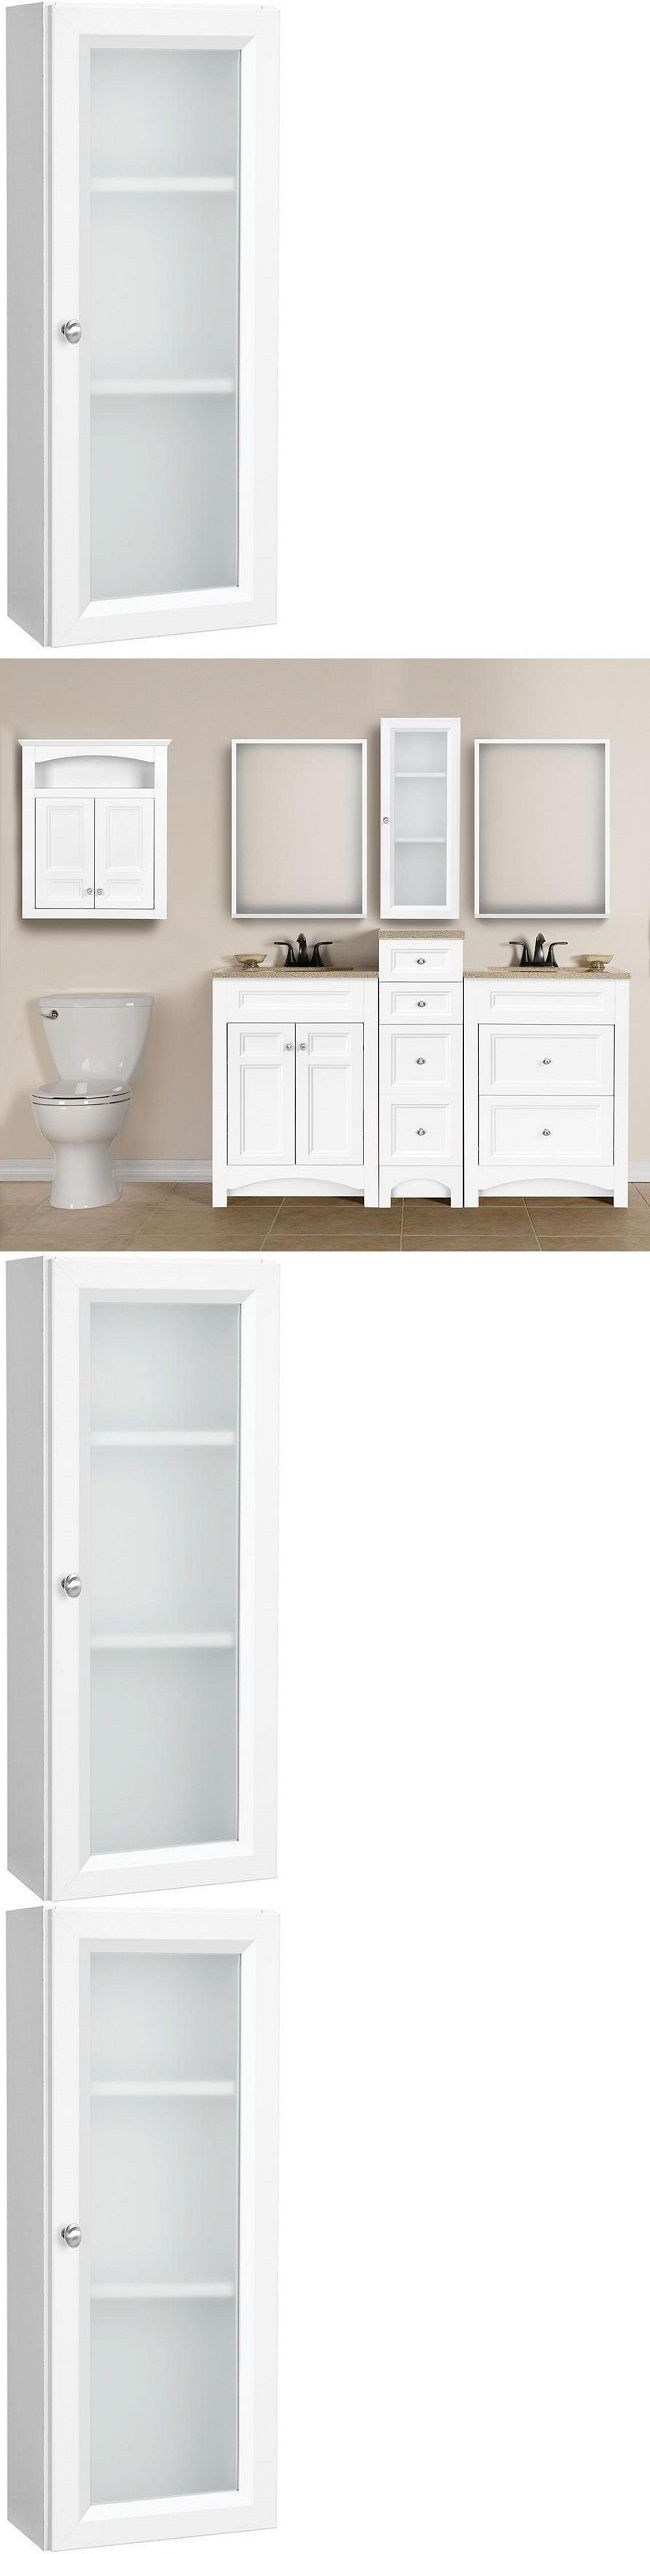 Best 20+ White medicine cabinet ideas on Pinterest